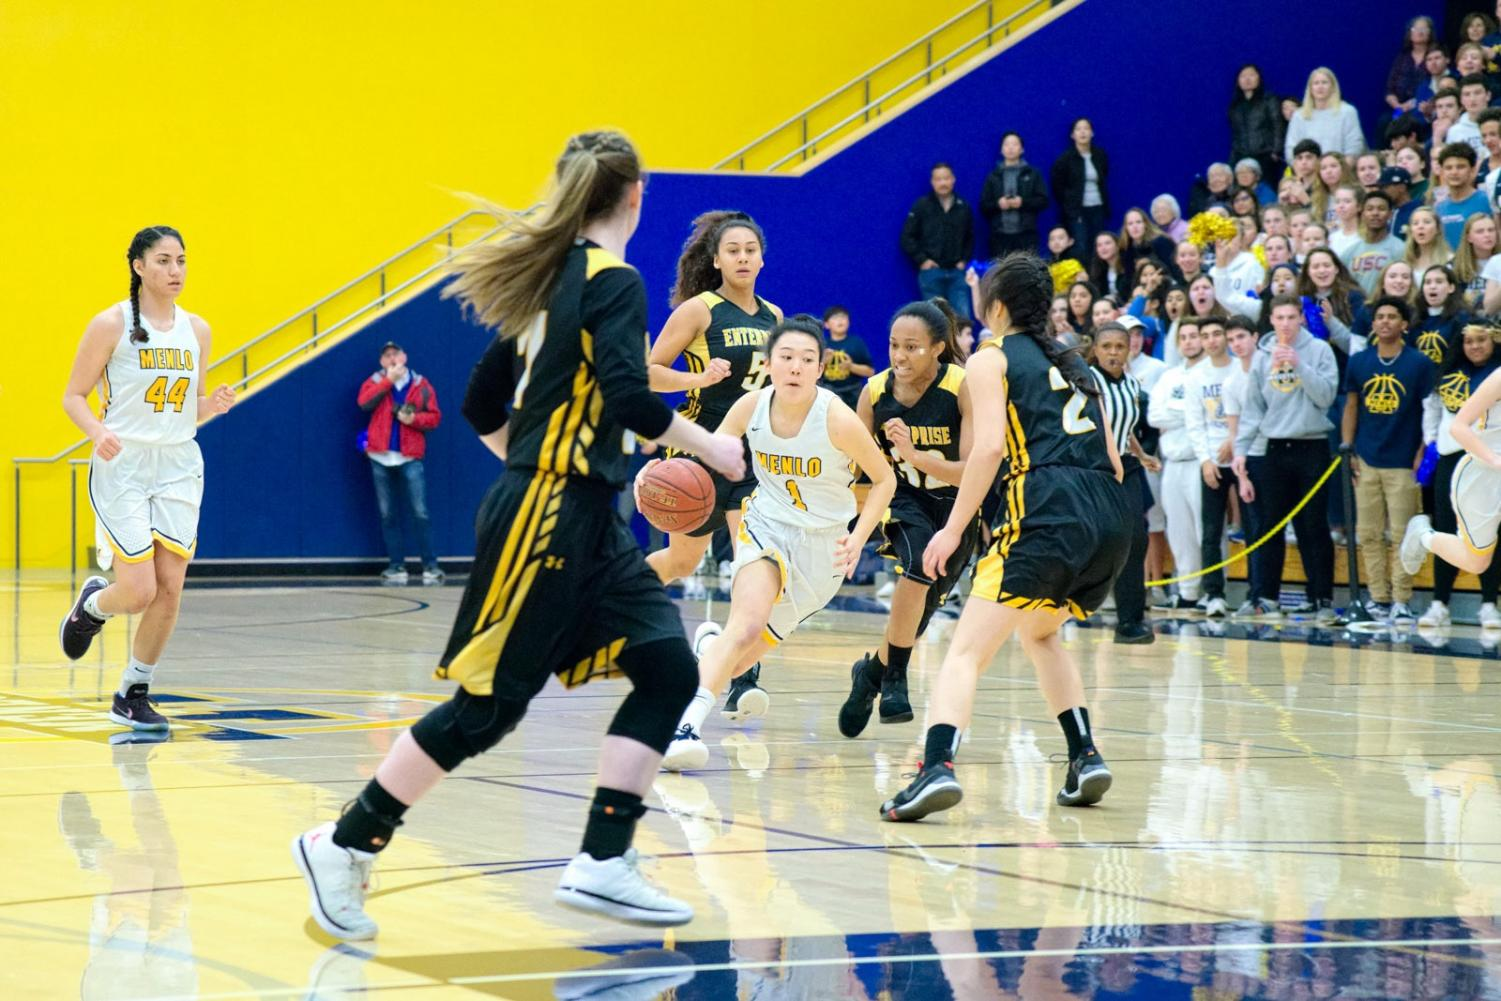 Sophomore Avery Lee drives to the basket. Photo courtesy of Cyrus Lowe.